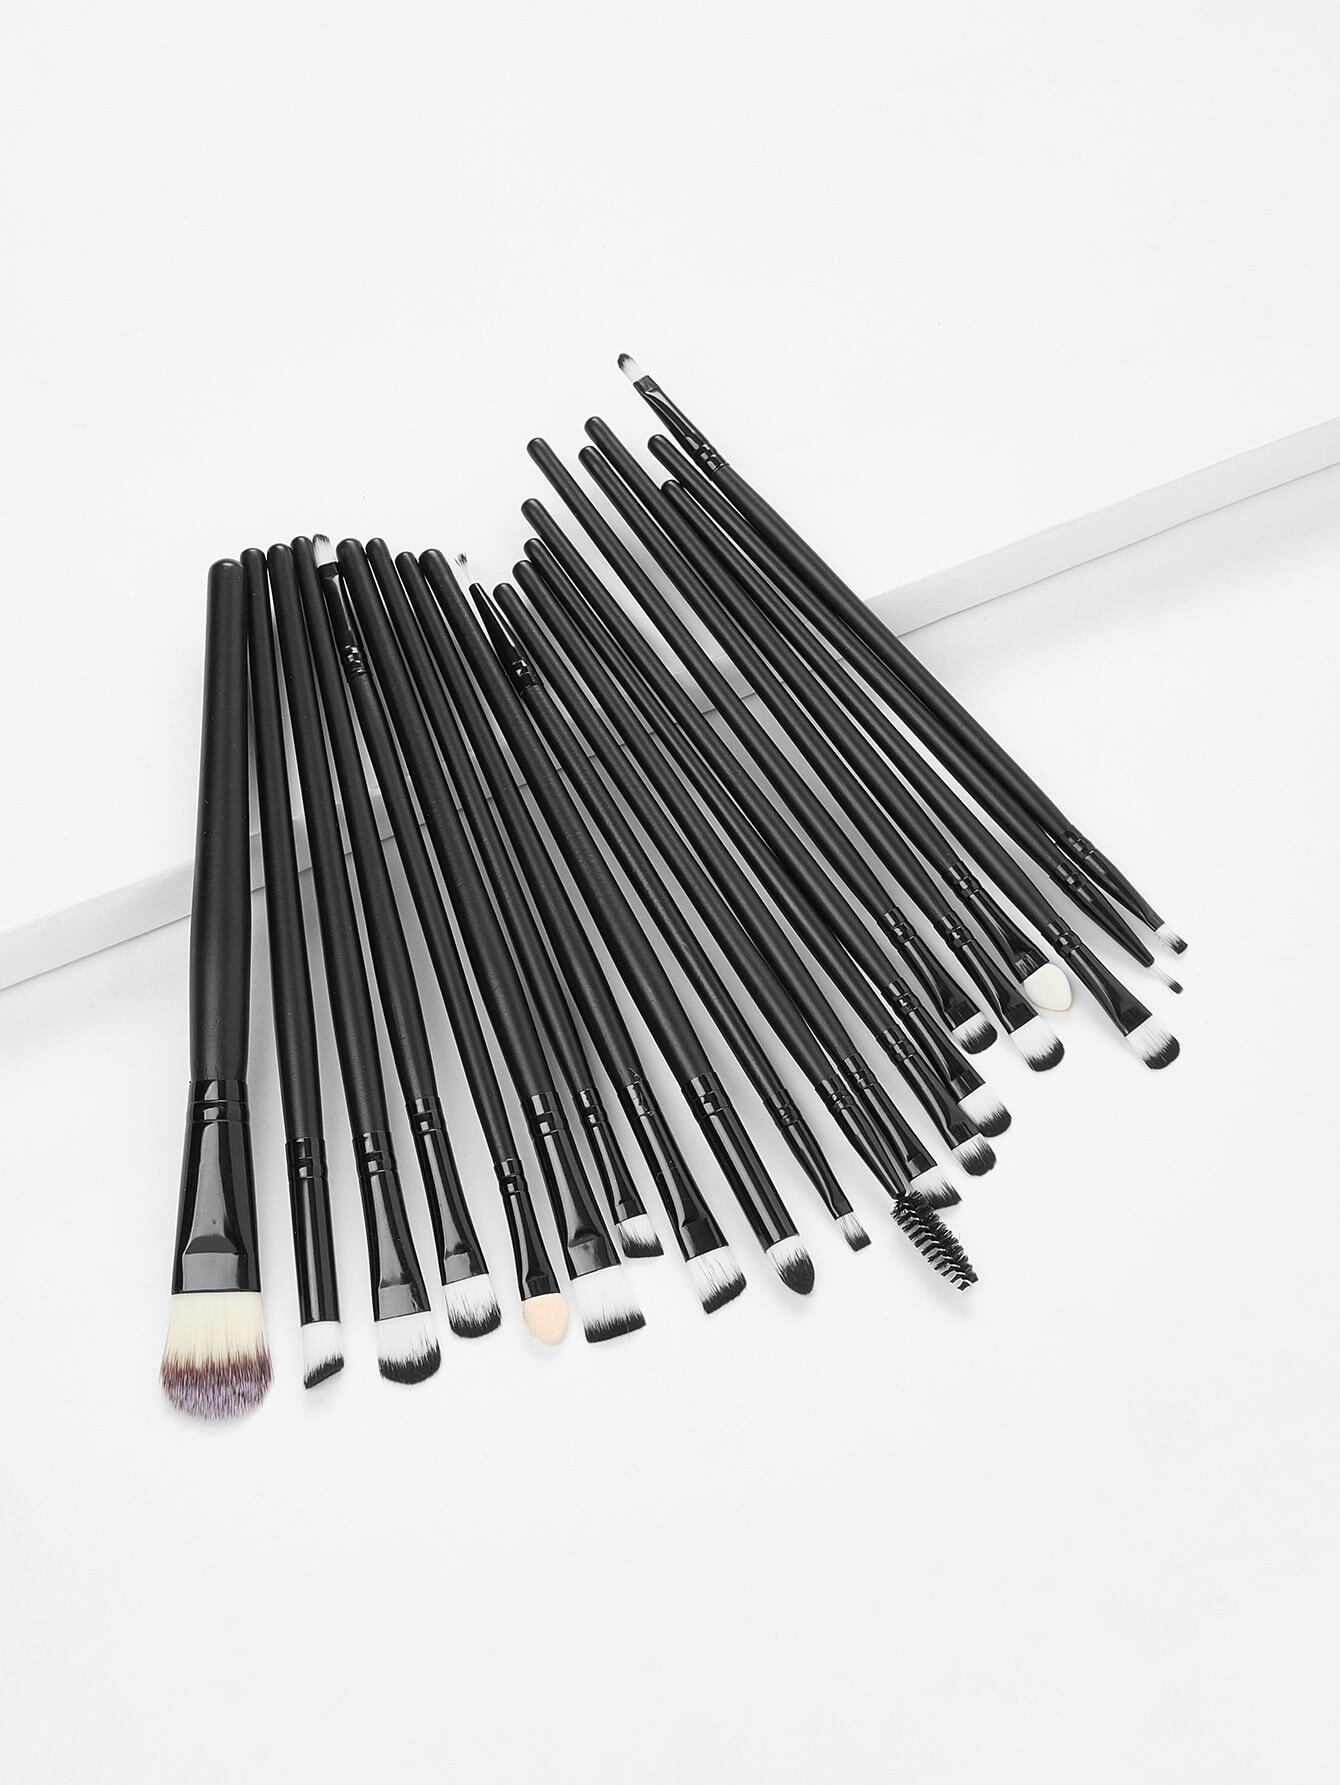 Professional Makeup 20pcs Brushes Set Powder Foundation Eyeshadow Eyeliner high quality 18pcs set cosmetic makeup brush foundation powder eyeliner professional brushes tool with roll up leather case